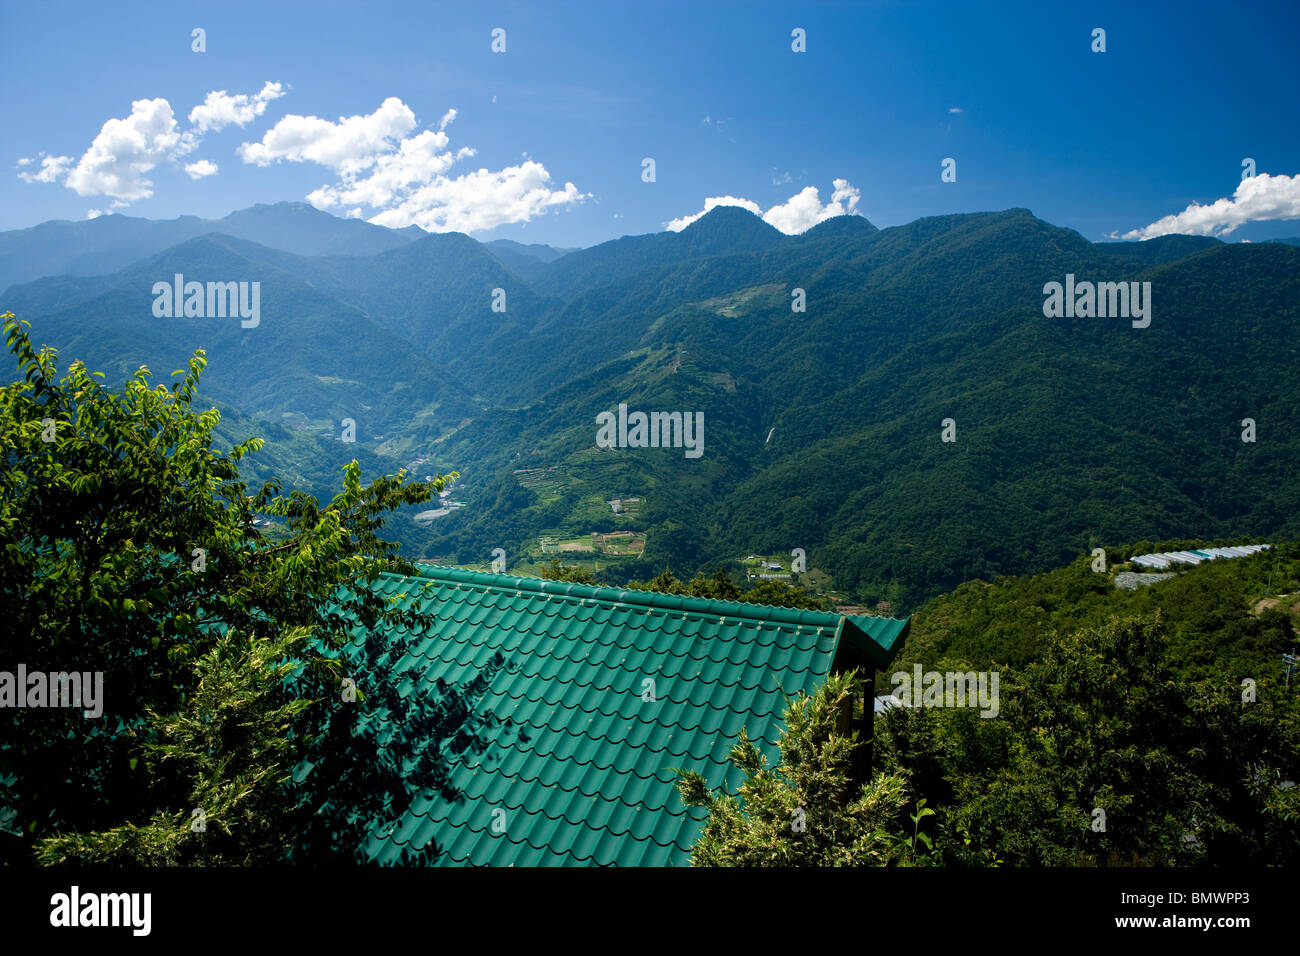 BMW Mountain View >> Mountain View In Cingjing Taiwan Stock Photo 30070155 Alamy